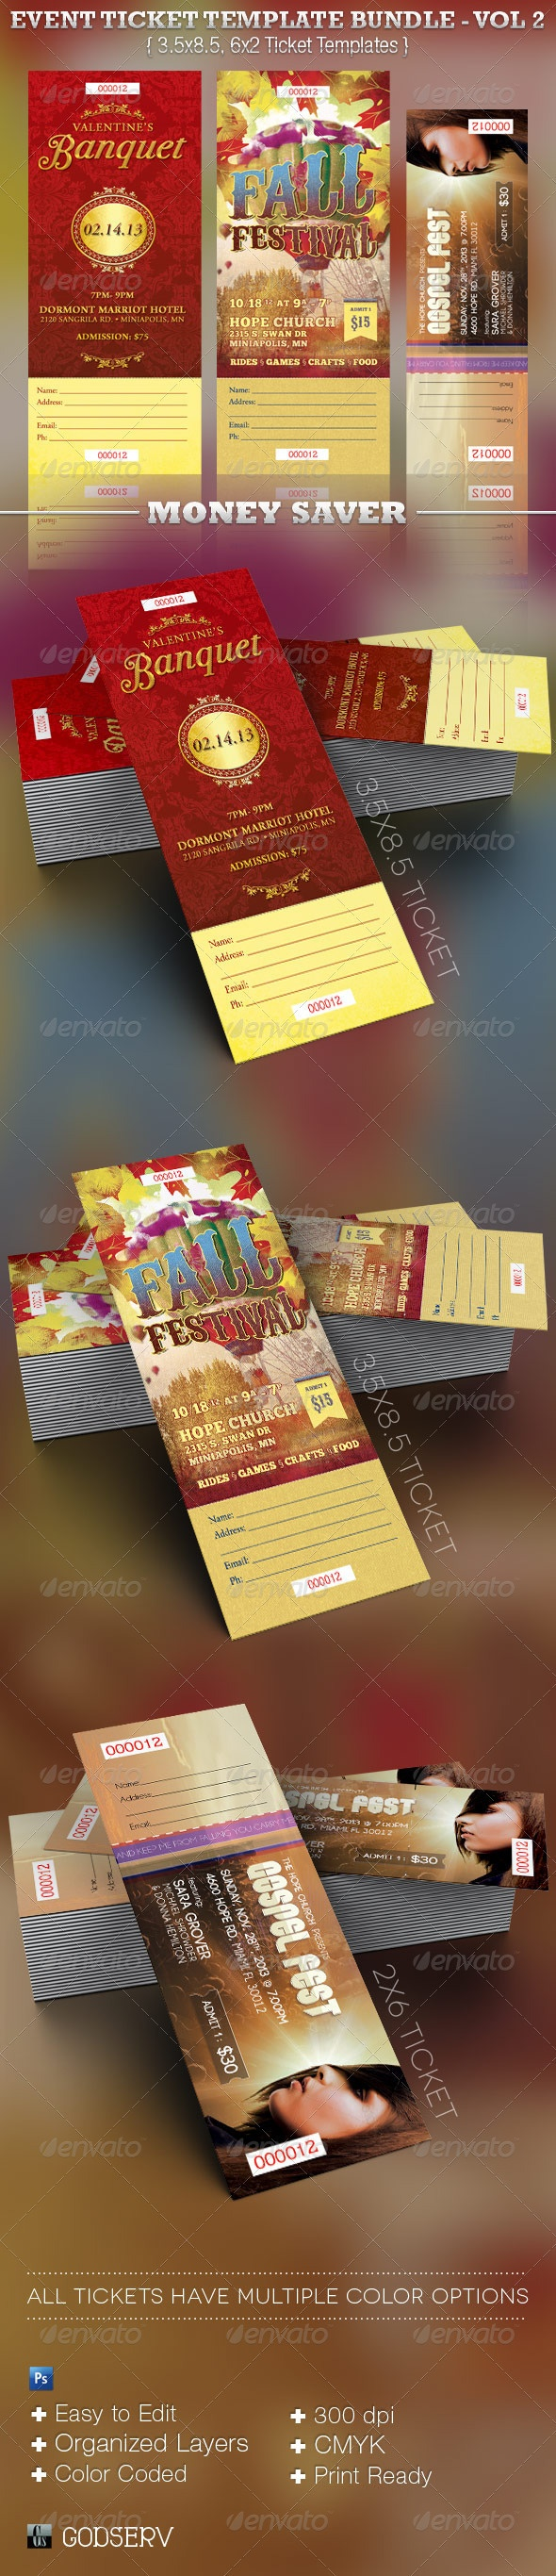 Food Tickets Template 9 Best Conga Chic Images On Pinterest  Brochures Design Posters .